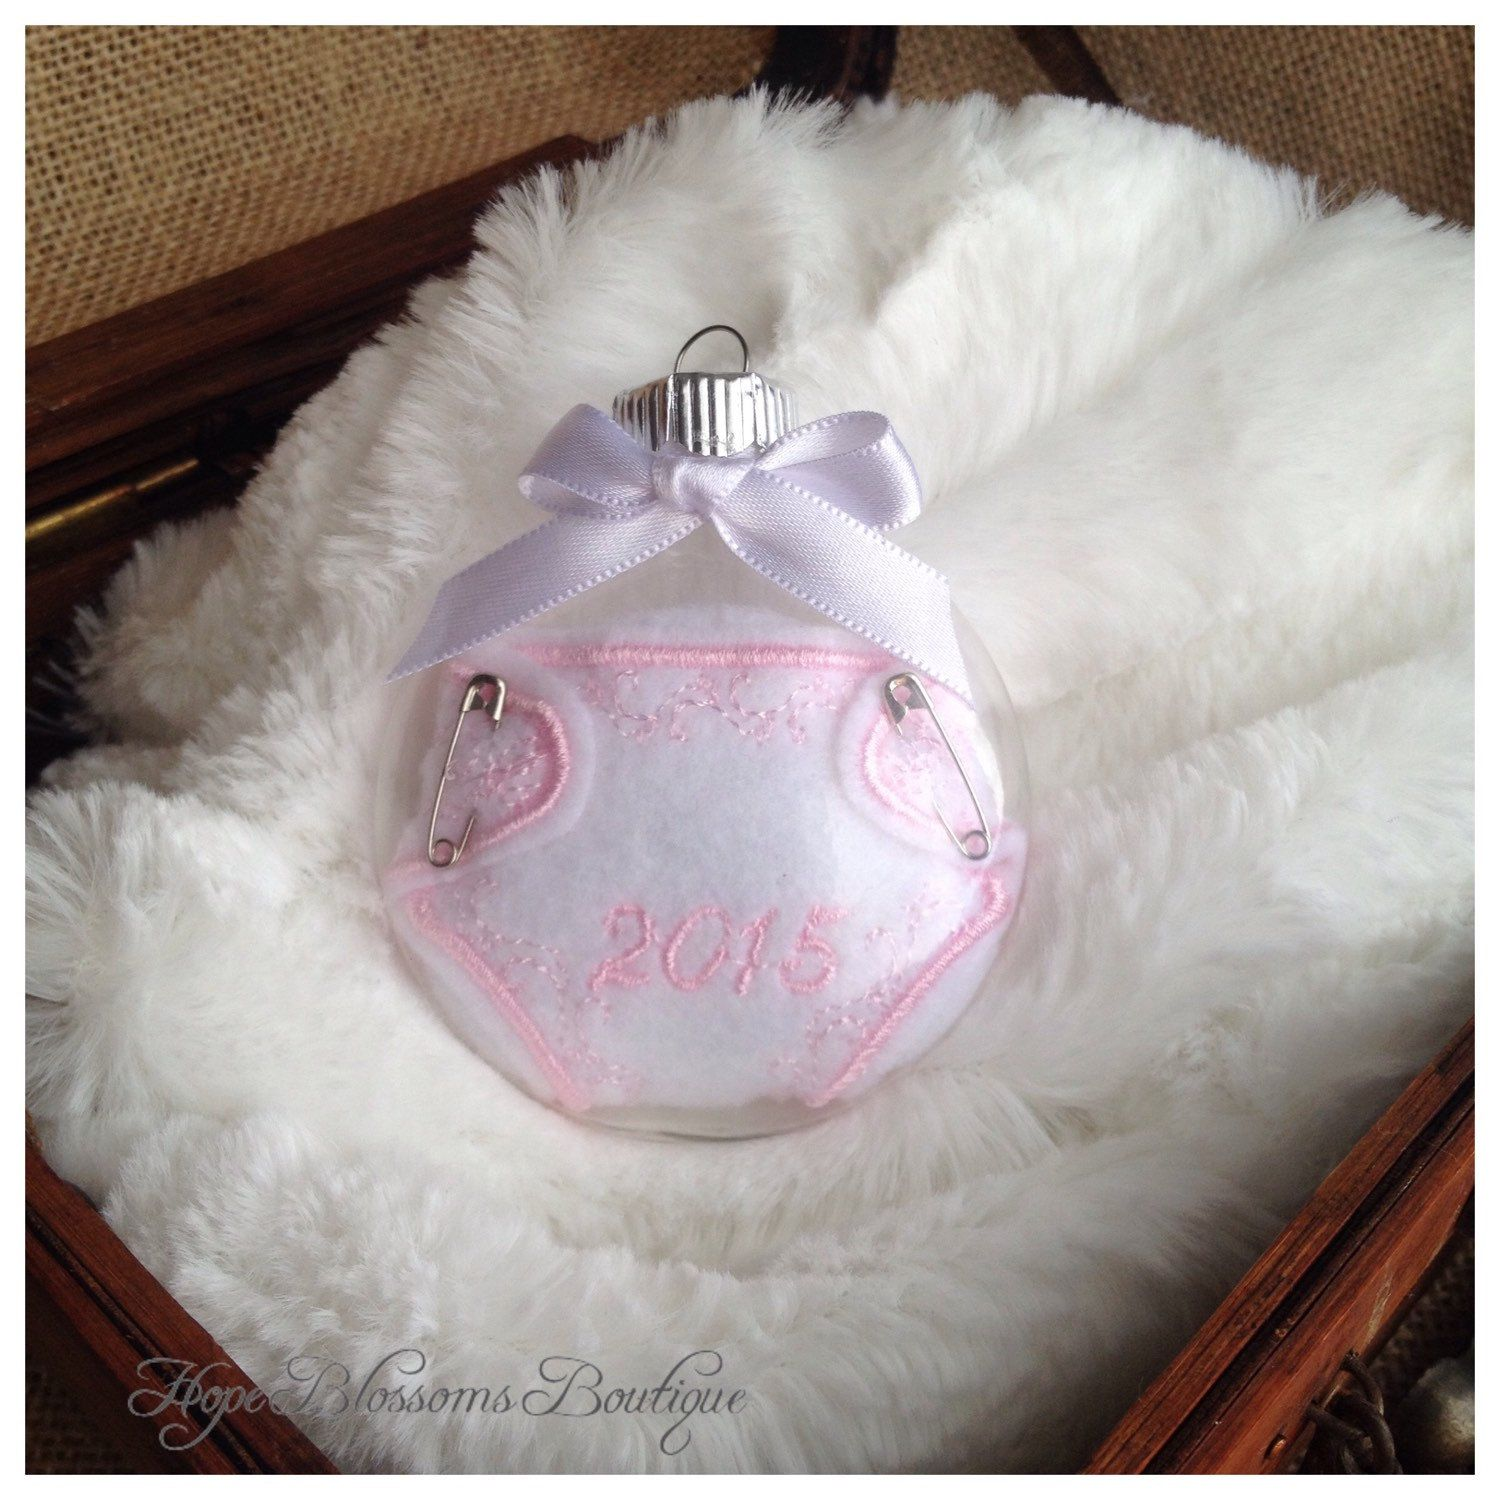 New baby christmas ornament - Baby Girl First Christmas Ornament 2016 Baby Christmas Ornament Baby Girl Ornament Babys First Christmas Ornament New Baby Ornament